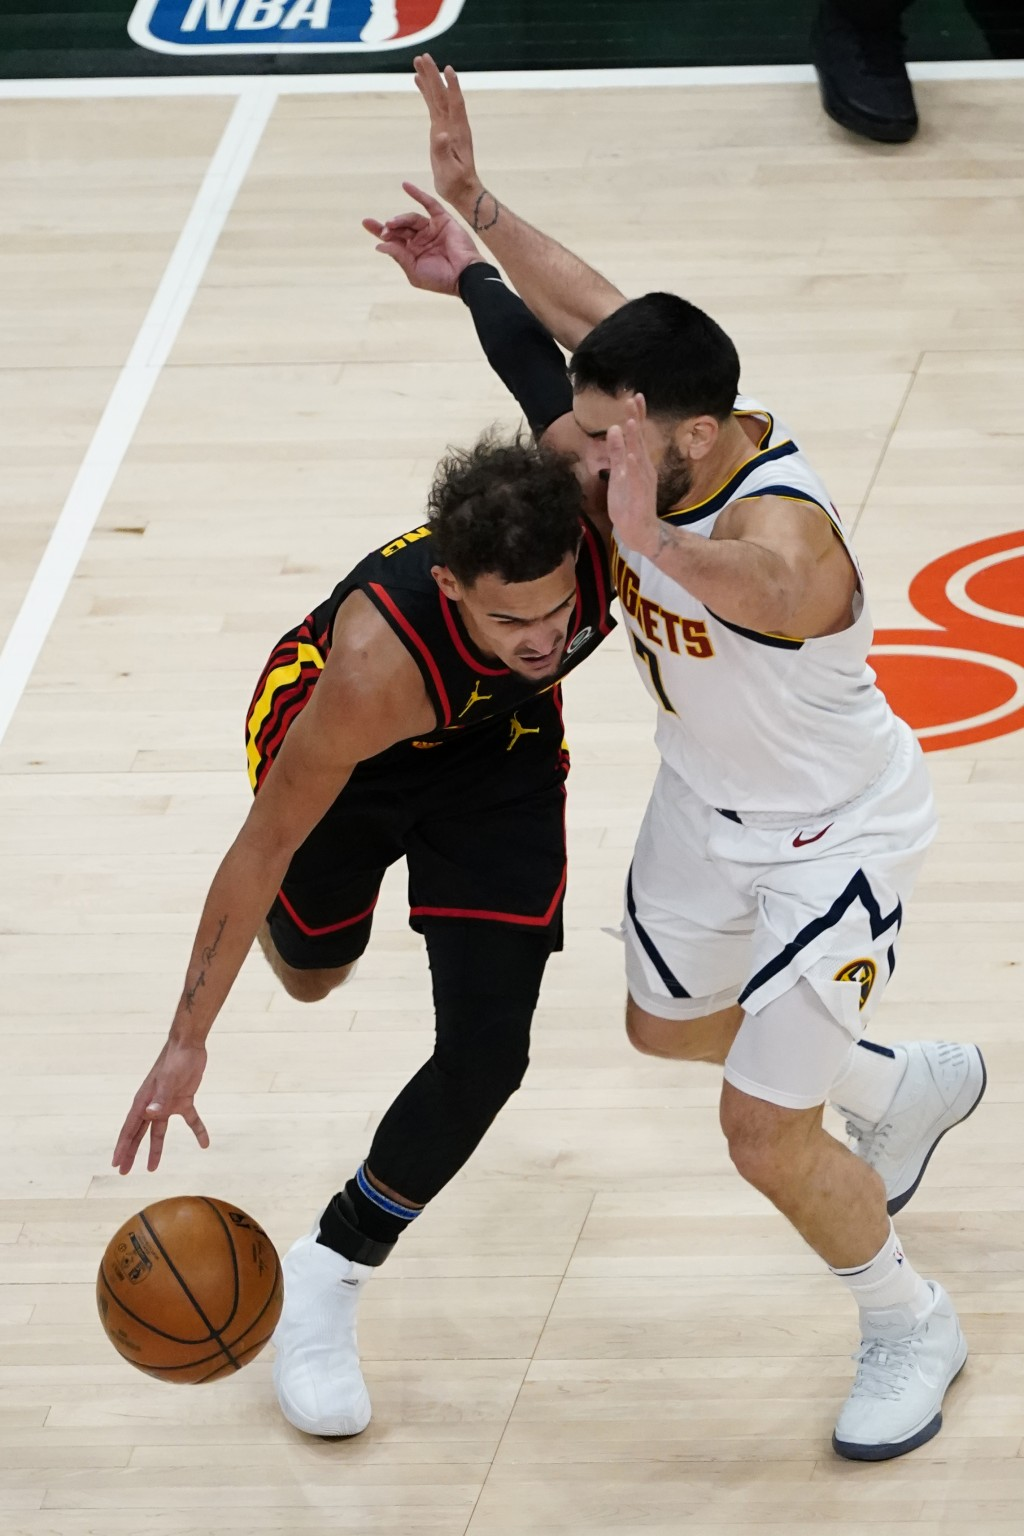 Atlanta Hawks guard Trae Young, left, drives against Denver Nuggets guard Facundo Campazzo, right, during the second half of an NBA basketball game Su...